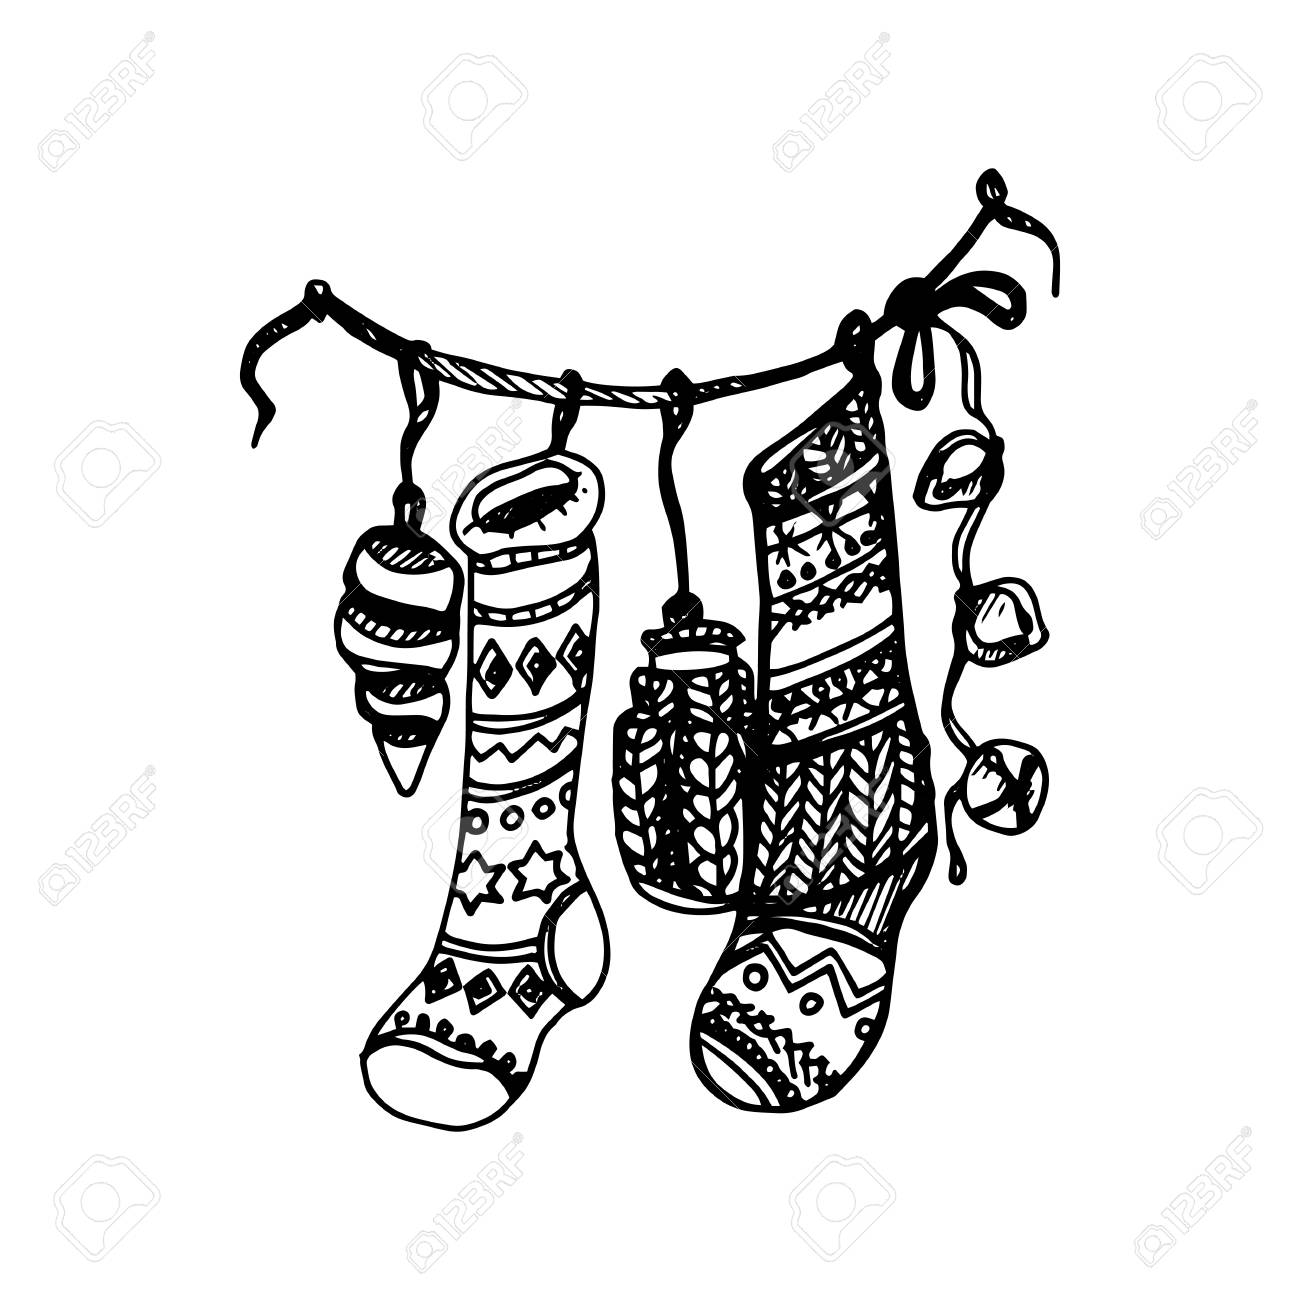 Drawings Of Christmas Stockings.Hand Drawing Artistic Doodle Icon Christmas Stocking Balls On